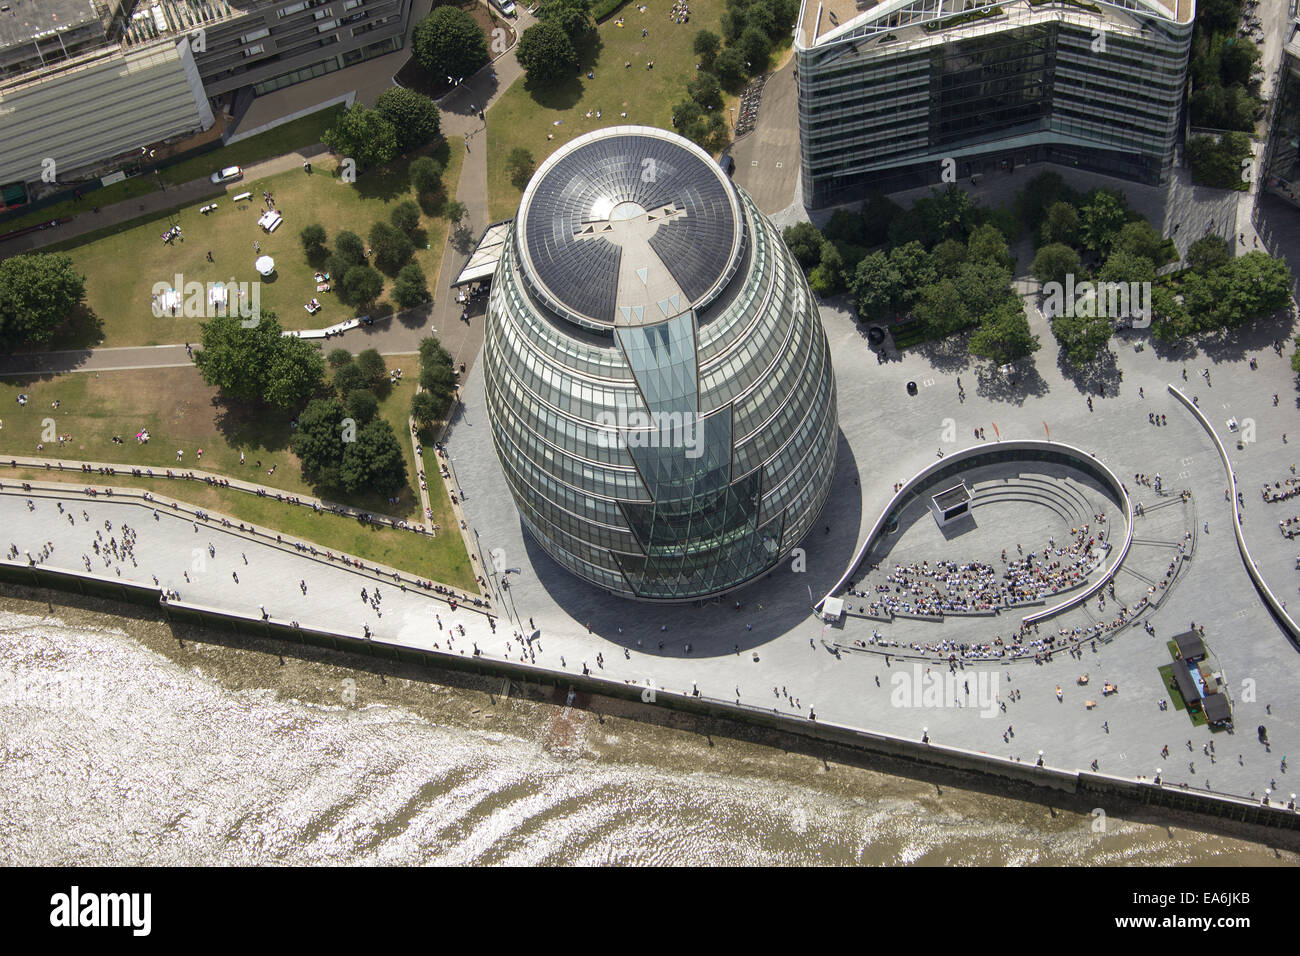 UK, London, City Hall and the Scoop - Stock Image